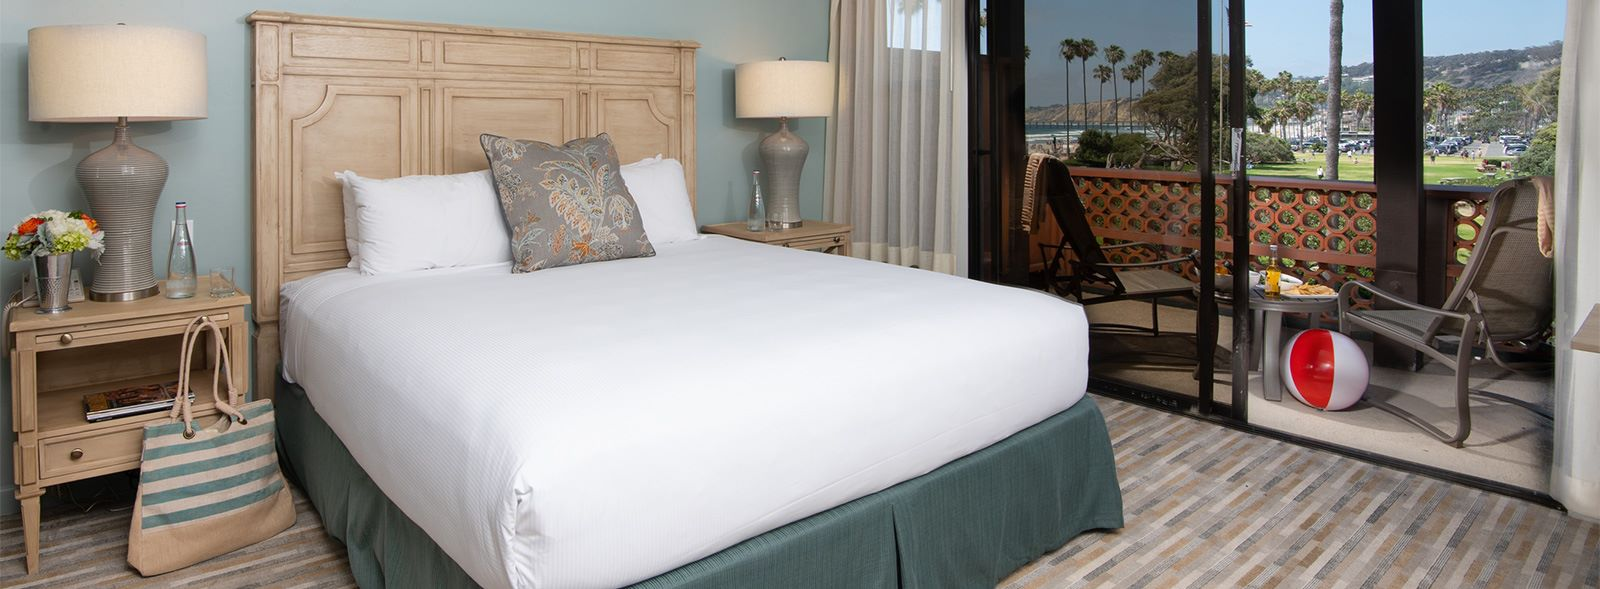 Stay Two Nights and Get the Third Night Free at La Jolla Shores Hotel